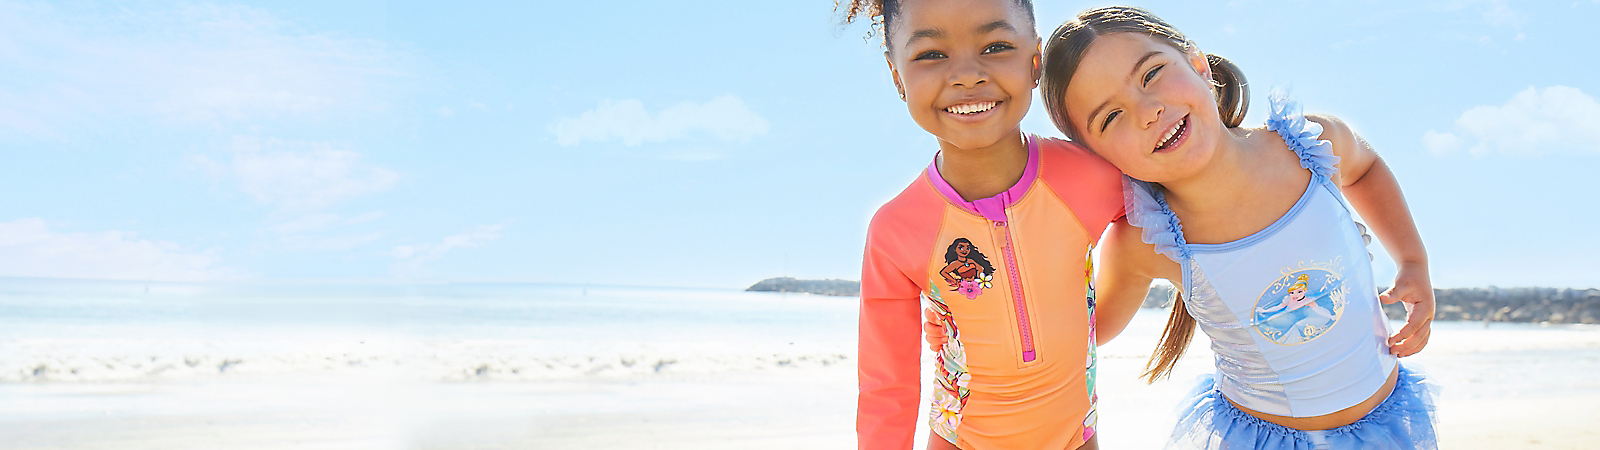 Girls' Swimwear They'll just wanna have sun in our must-have swimsuits, cover-ups and more! Our swim styles feature UPF 50+ built-in UV protection.